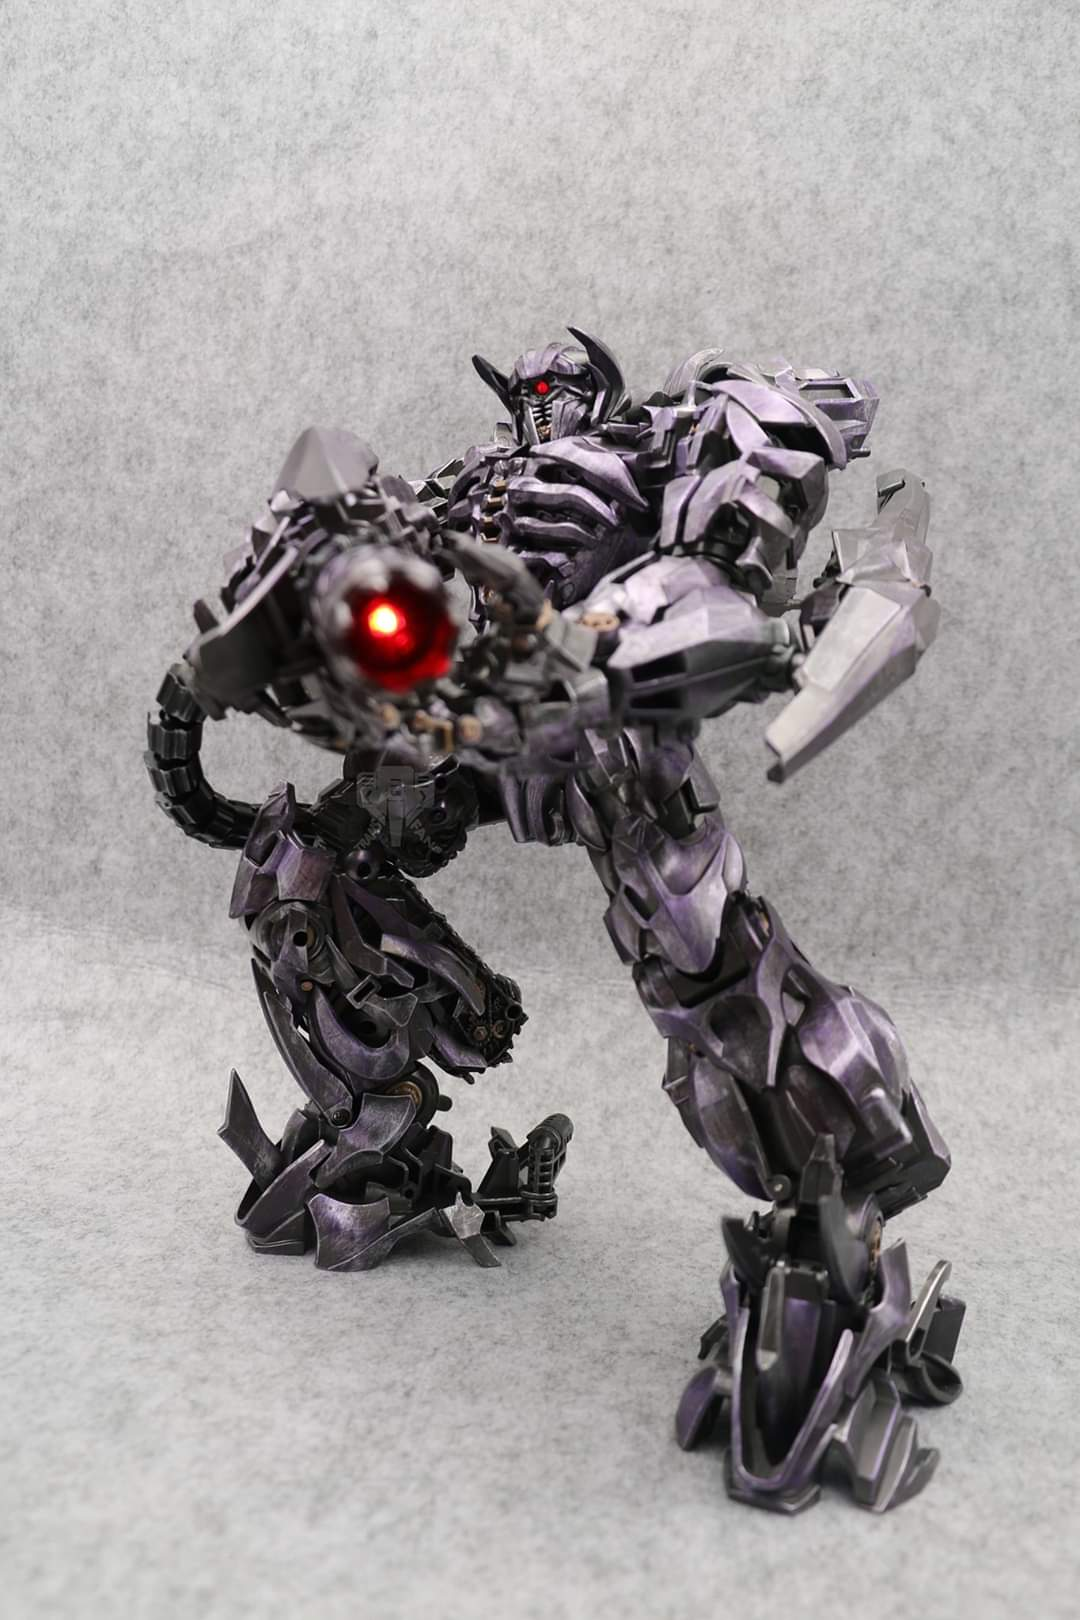 [Zeus Model] Produit Tiers - ZS-01 Guardian of the Universe - aka DOTM Shockwave NHuNfurz_o